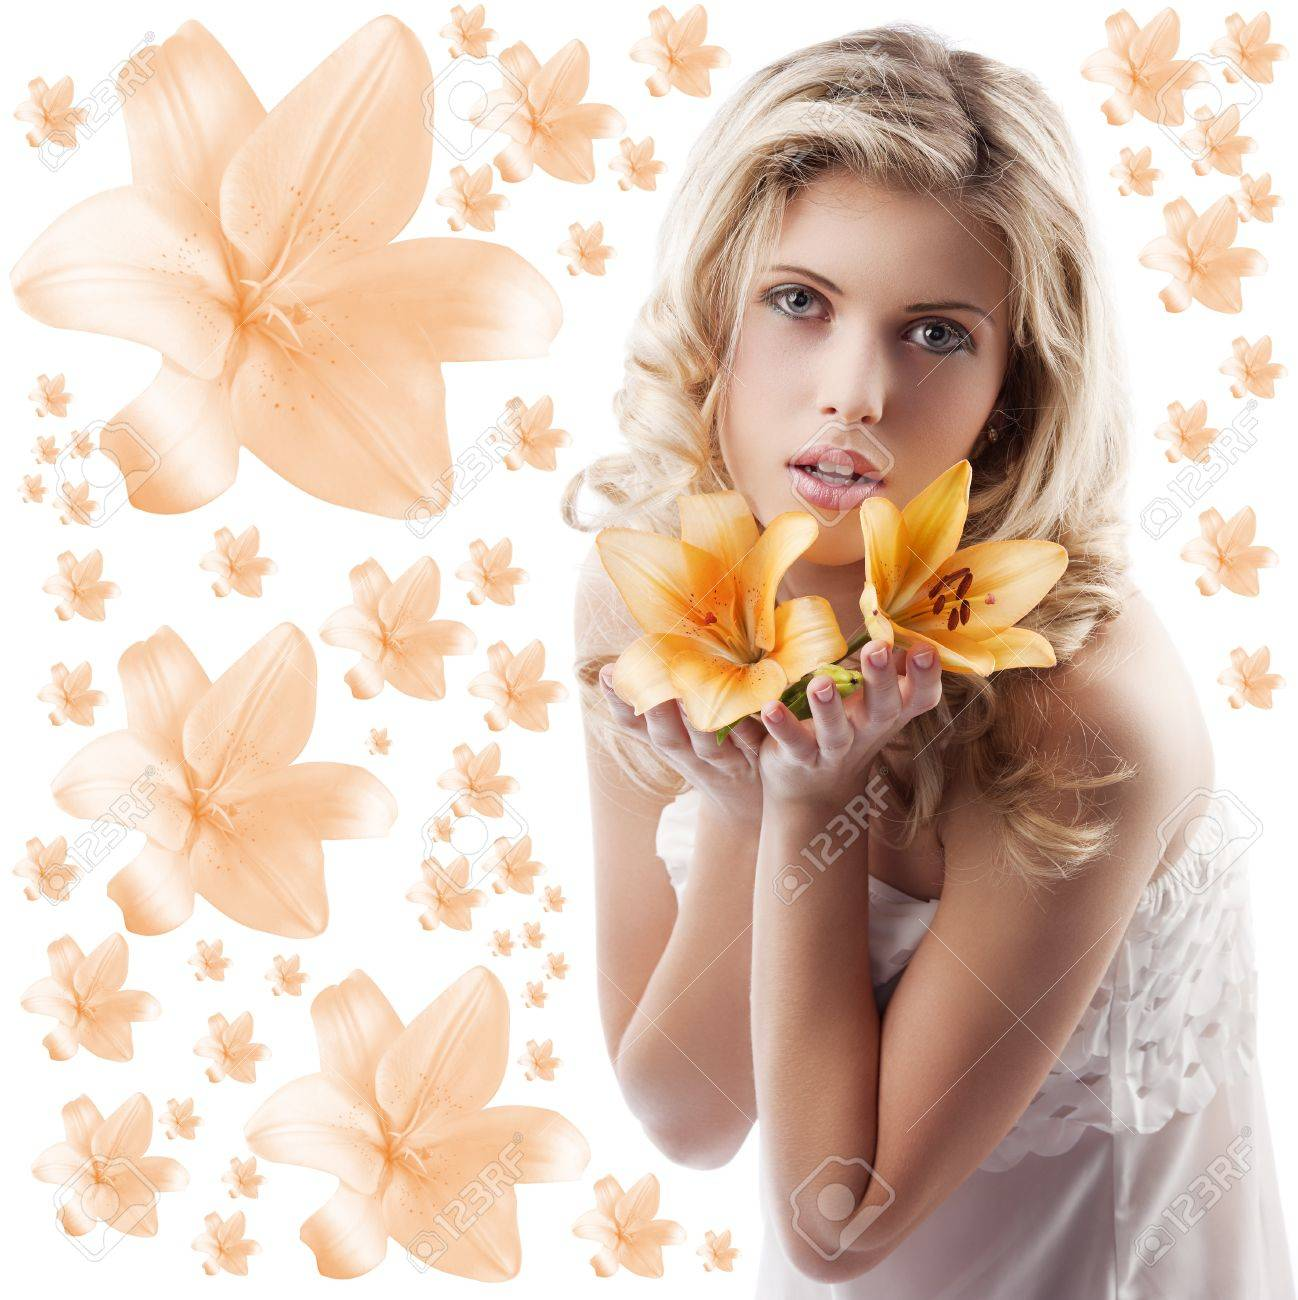 classic beauty portrait of young and beautiful woman with orange lily and blond curly hair on white background Stock Photo - 10626629